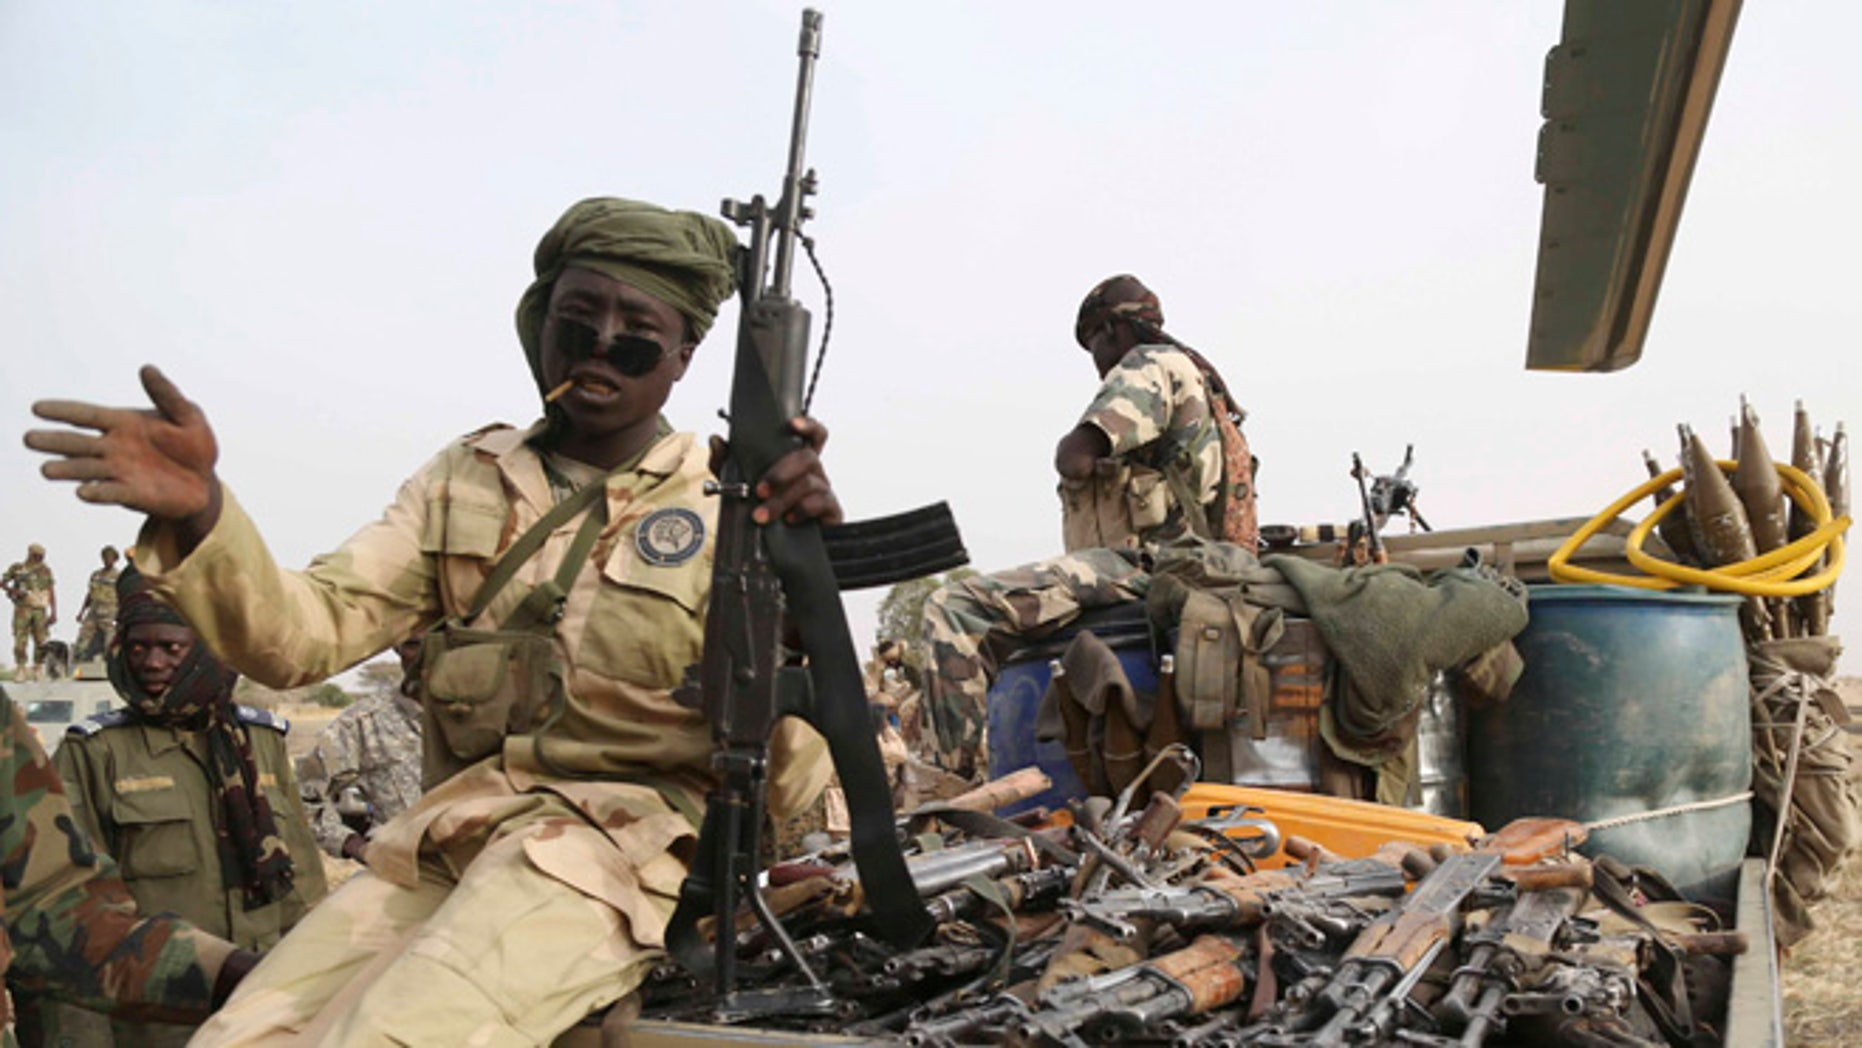 March 18, 2015:Chadian soldiers carry weapons captured from Boko Haram in a pickup truck in the recently retaken town of Damasak, Nigeria.  (REUTERS/Emmanuel Braun)